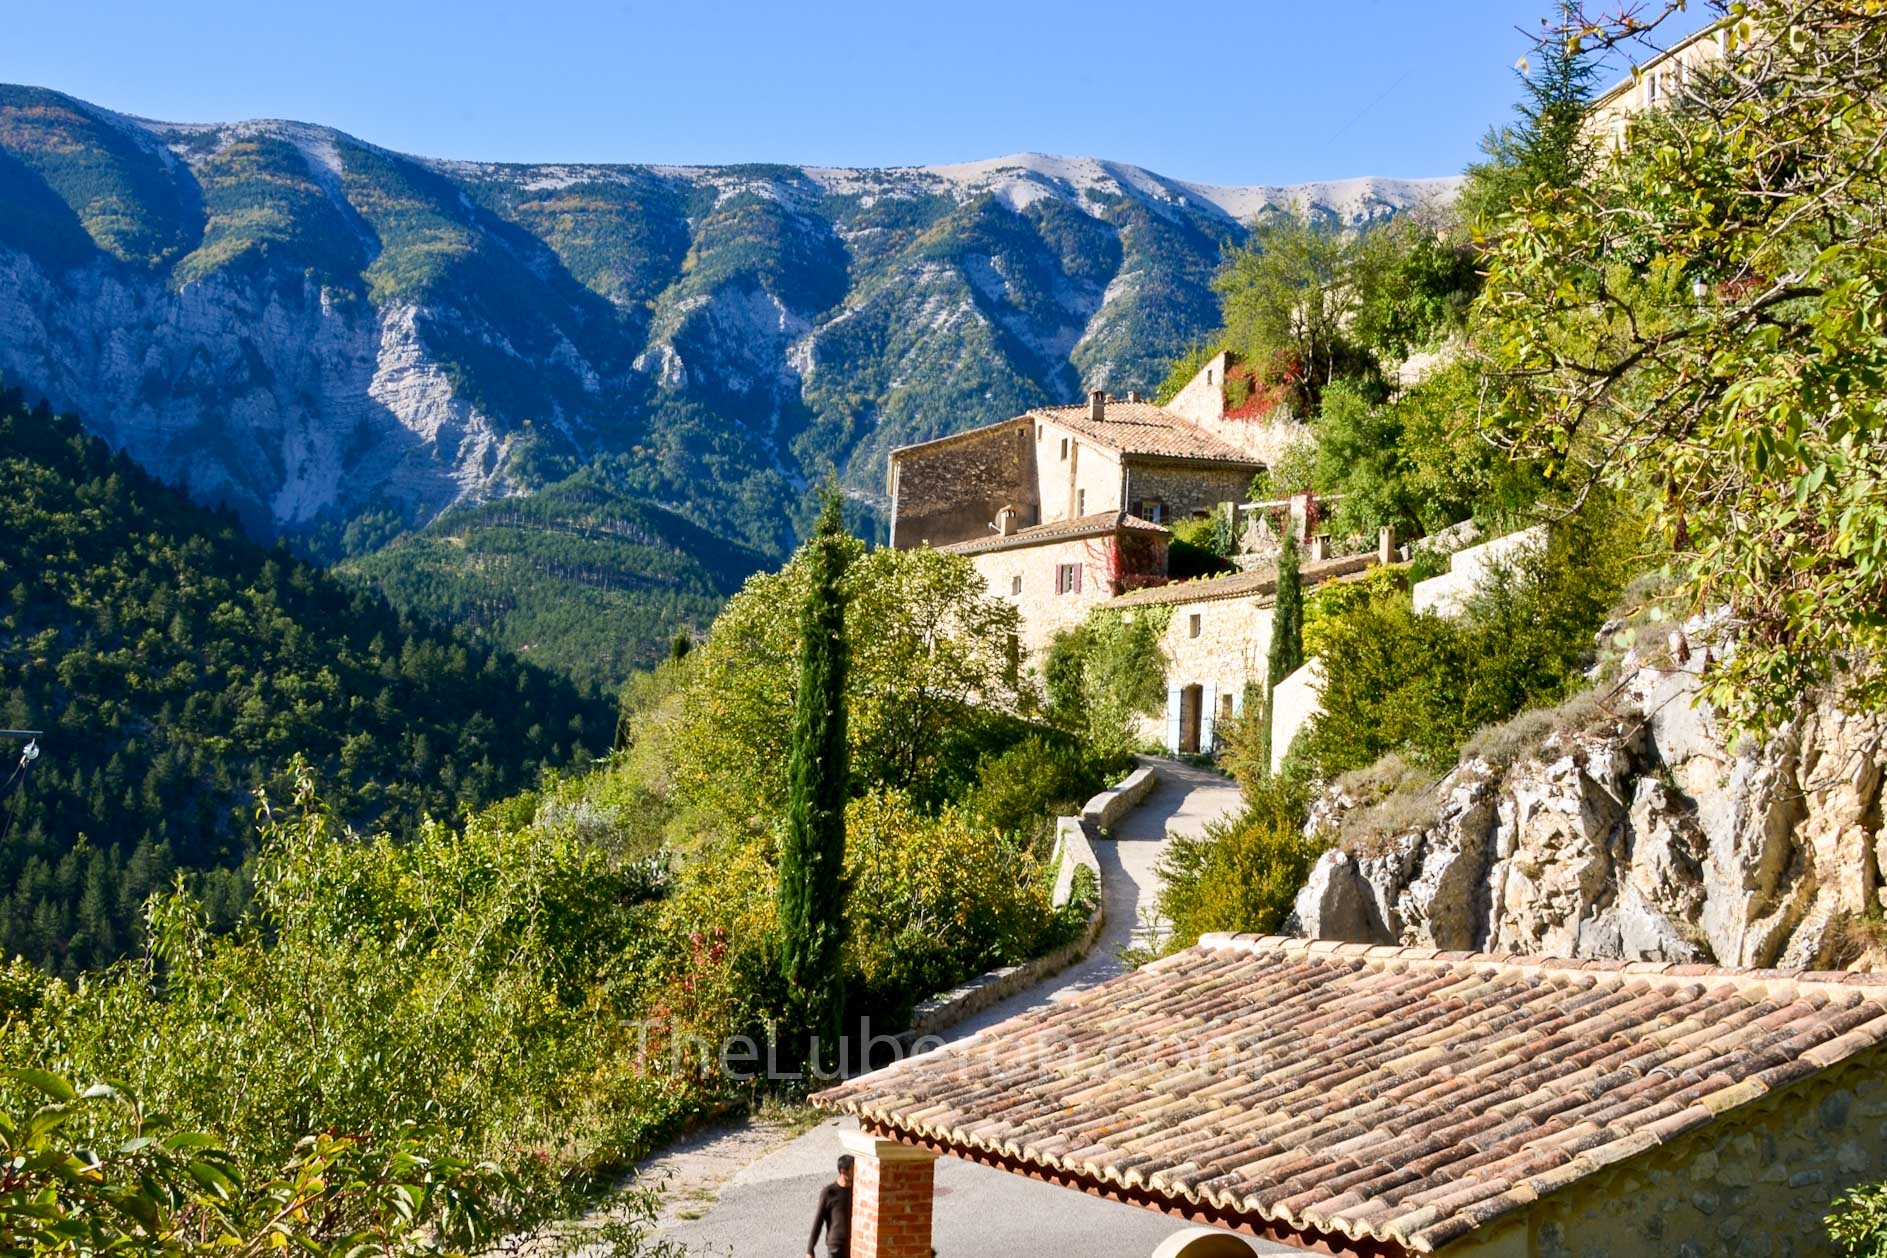 Brantes with the mont Ventoux in the background